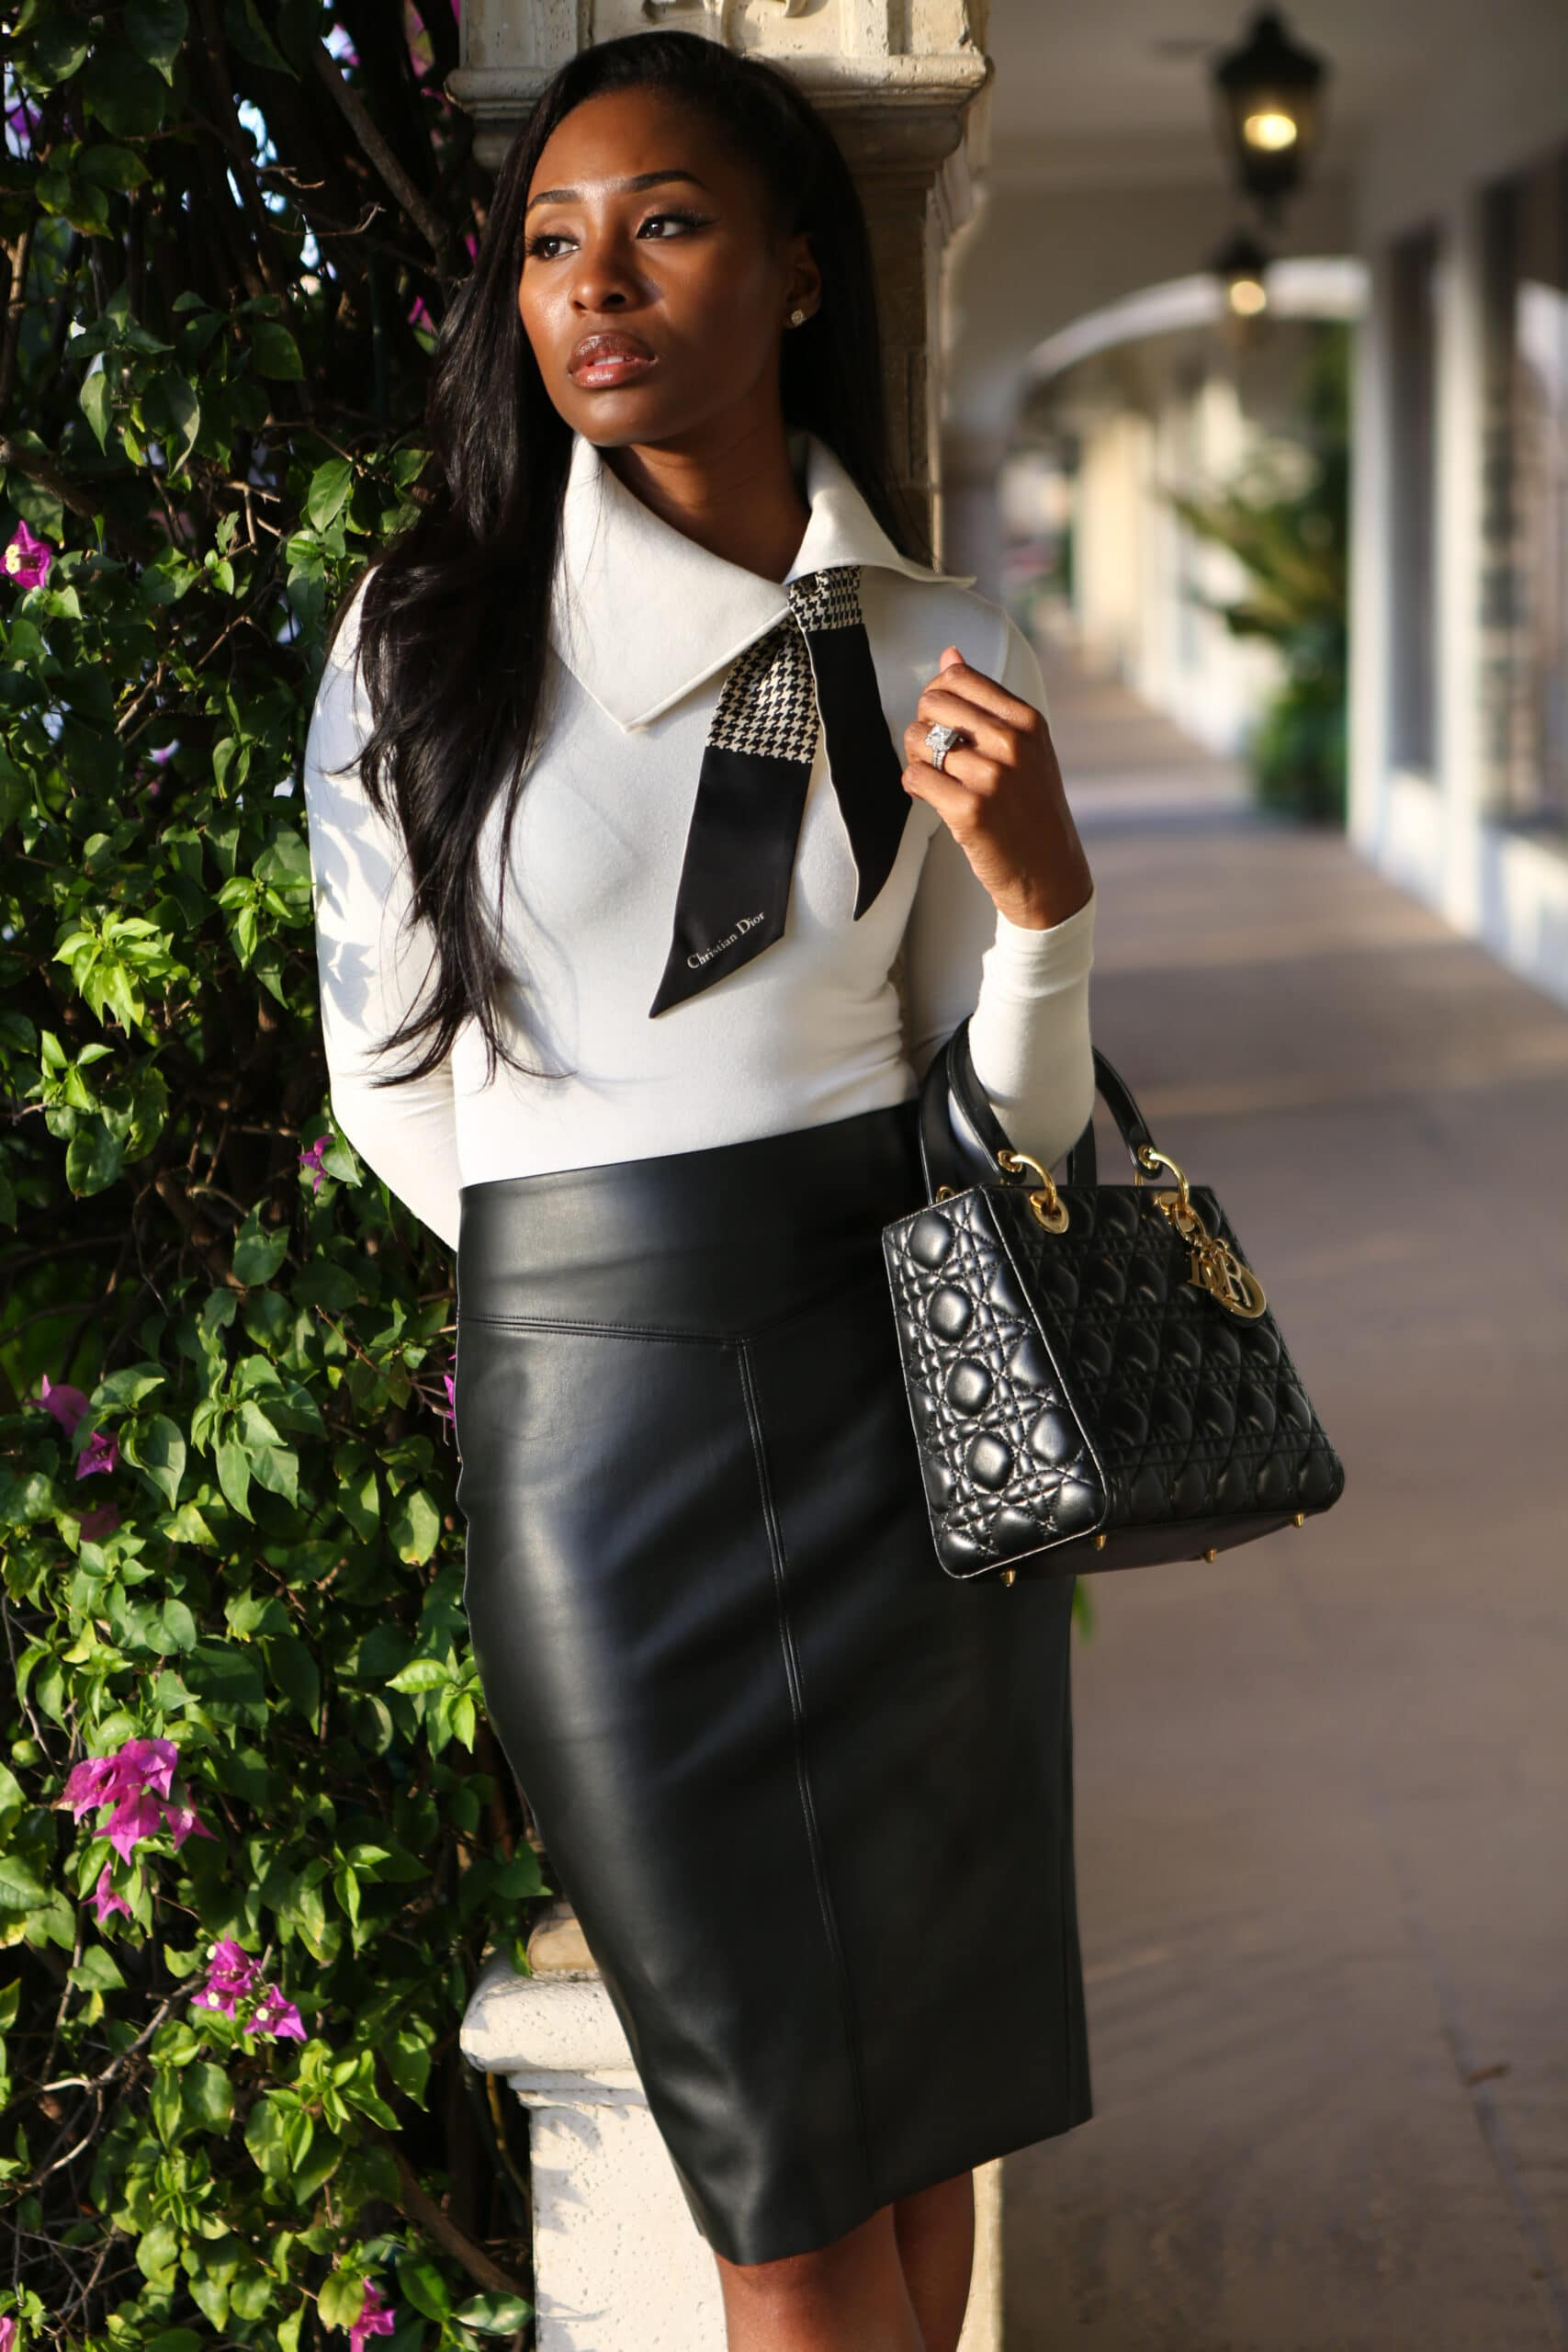 How to Dress for a Private School Interview